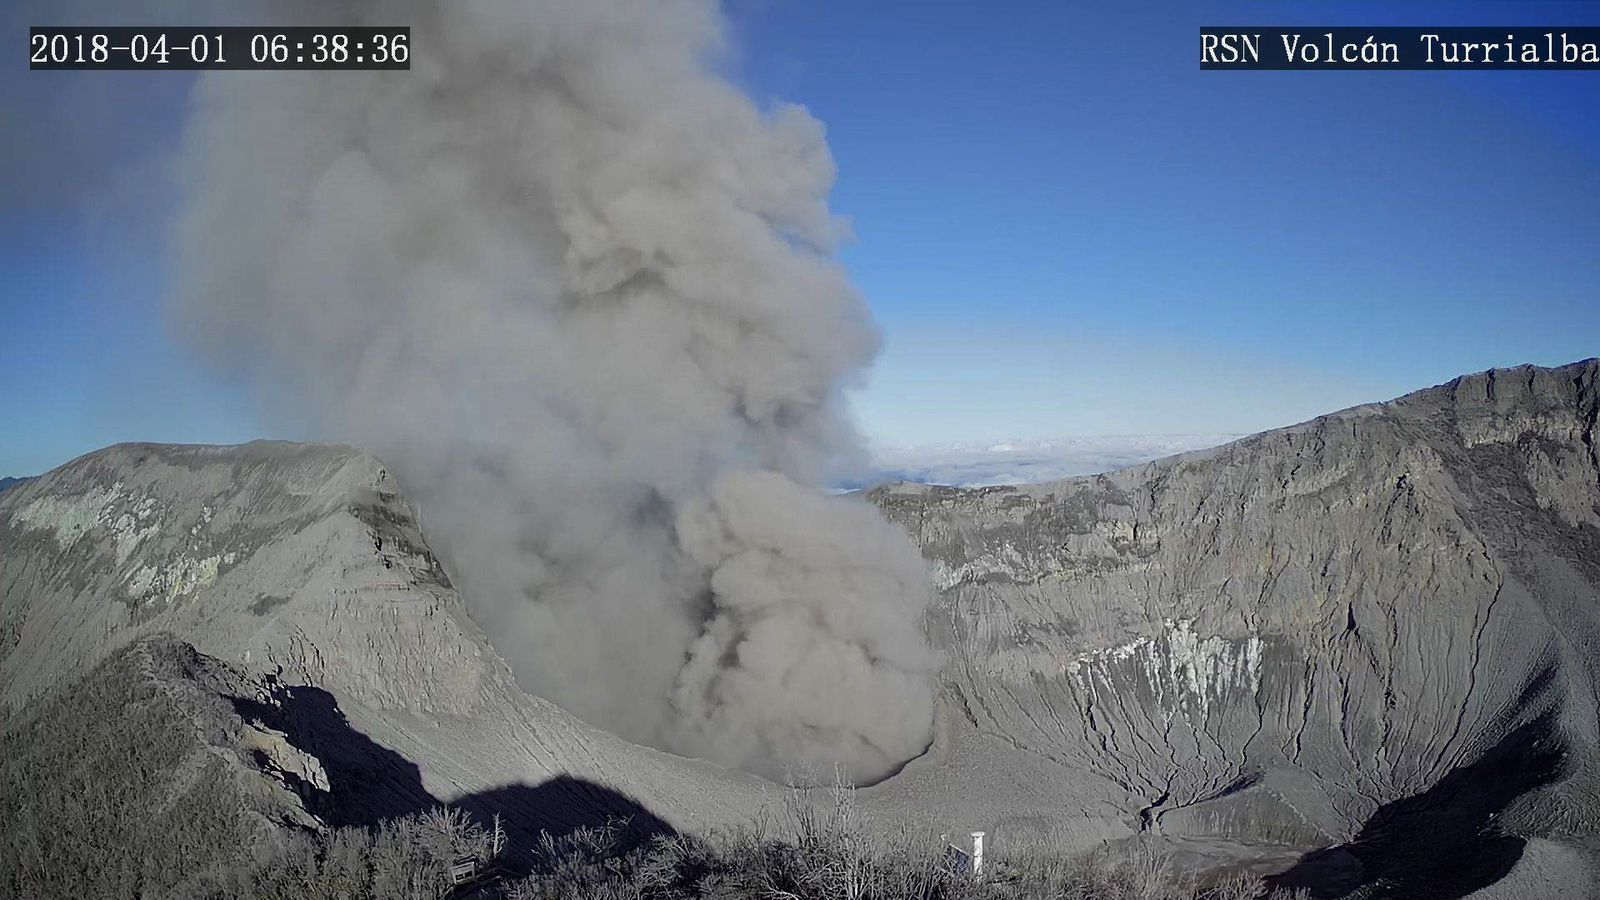 Turrialba - émission de cendres du 01.04.2018 / 6h38 - webcam RSN